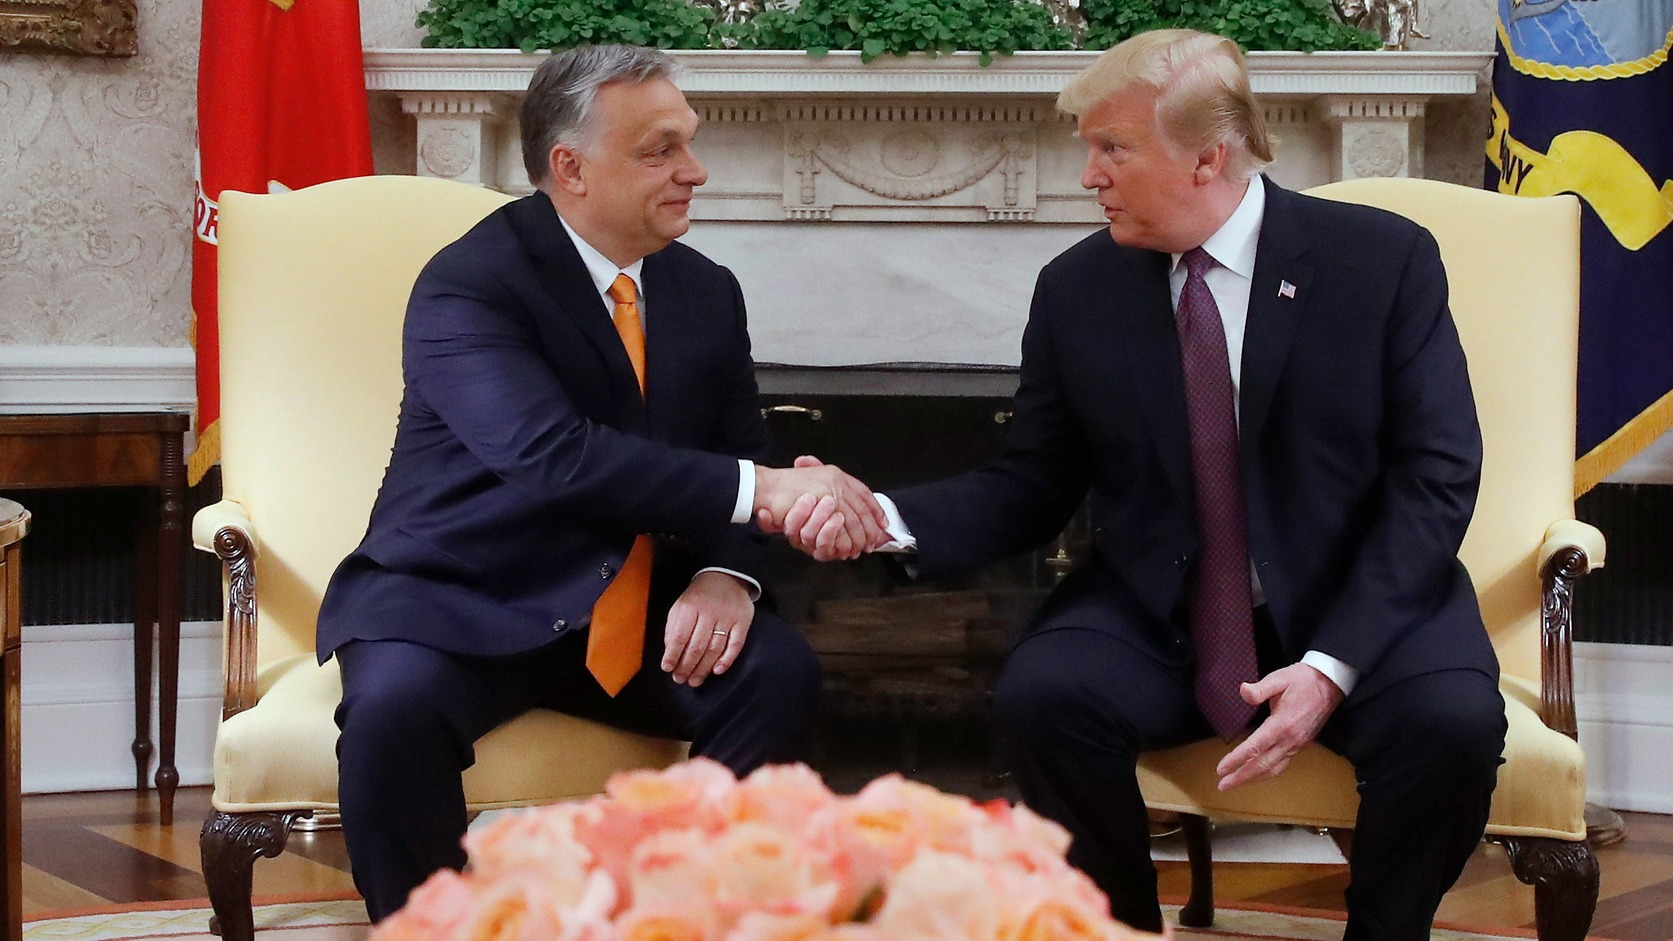 epa07568180 US President Donald J. Trump (R) and Hungarian Prime Minister Viktor Orban shake hands during their meeting in the Oval Office of the White House in Washington, DC, USA, 13 May 2019.  EPA/Szilard Koszticsak HUNGARY OUT